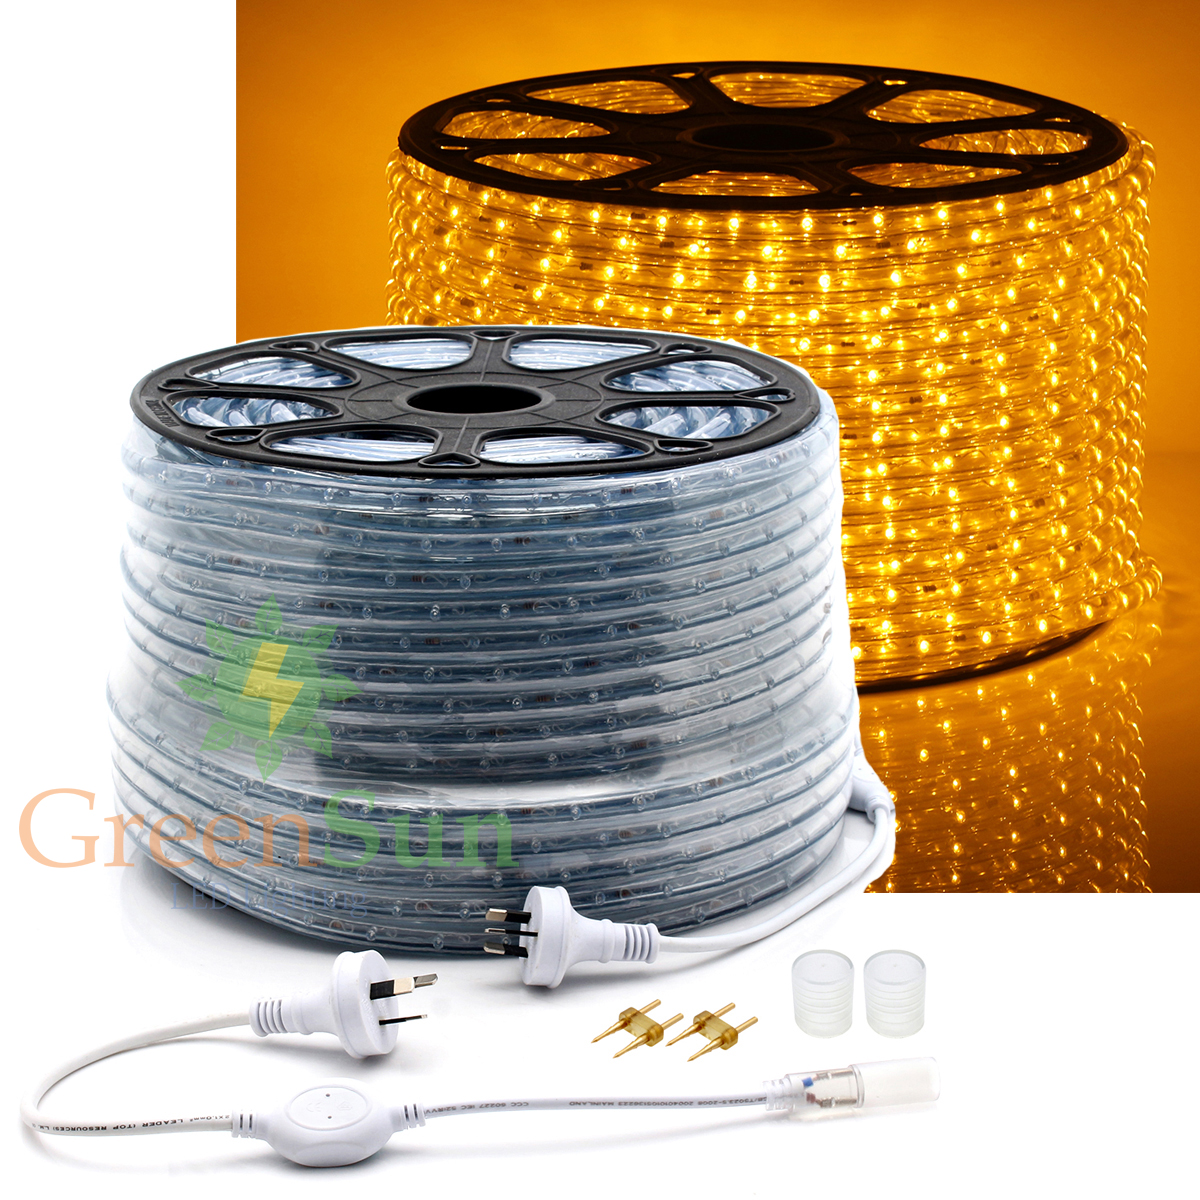 ФОТО 20-50M M36 leds/m 2-Wire Waterproof IP68 Yellow LED Strip Rope Light Home Garden Xmas Lamp LED Strip Light With Power line